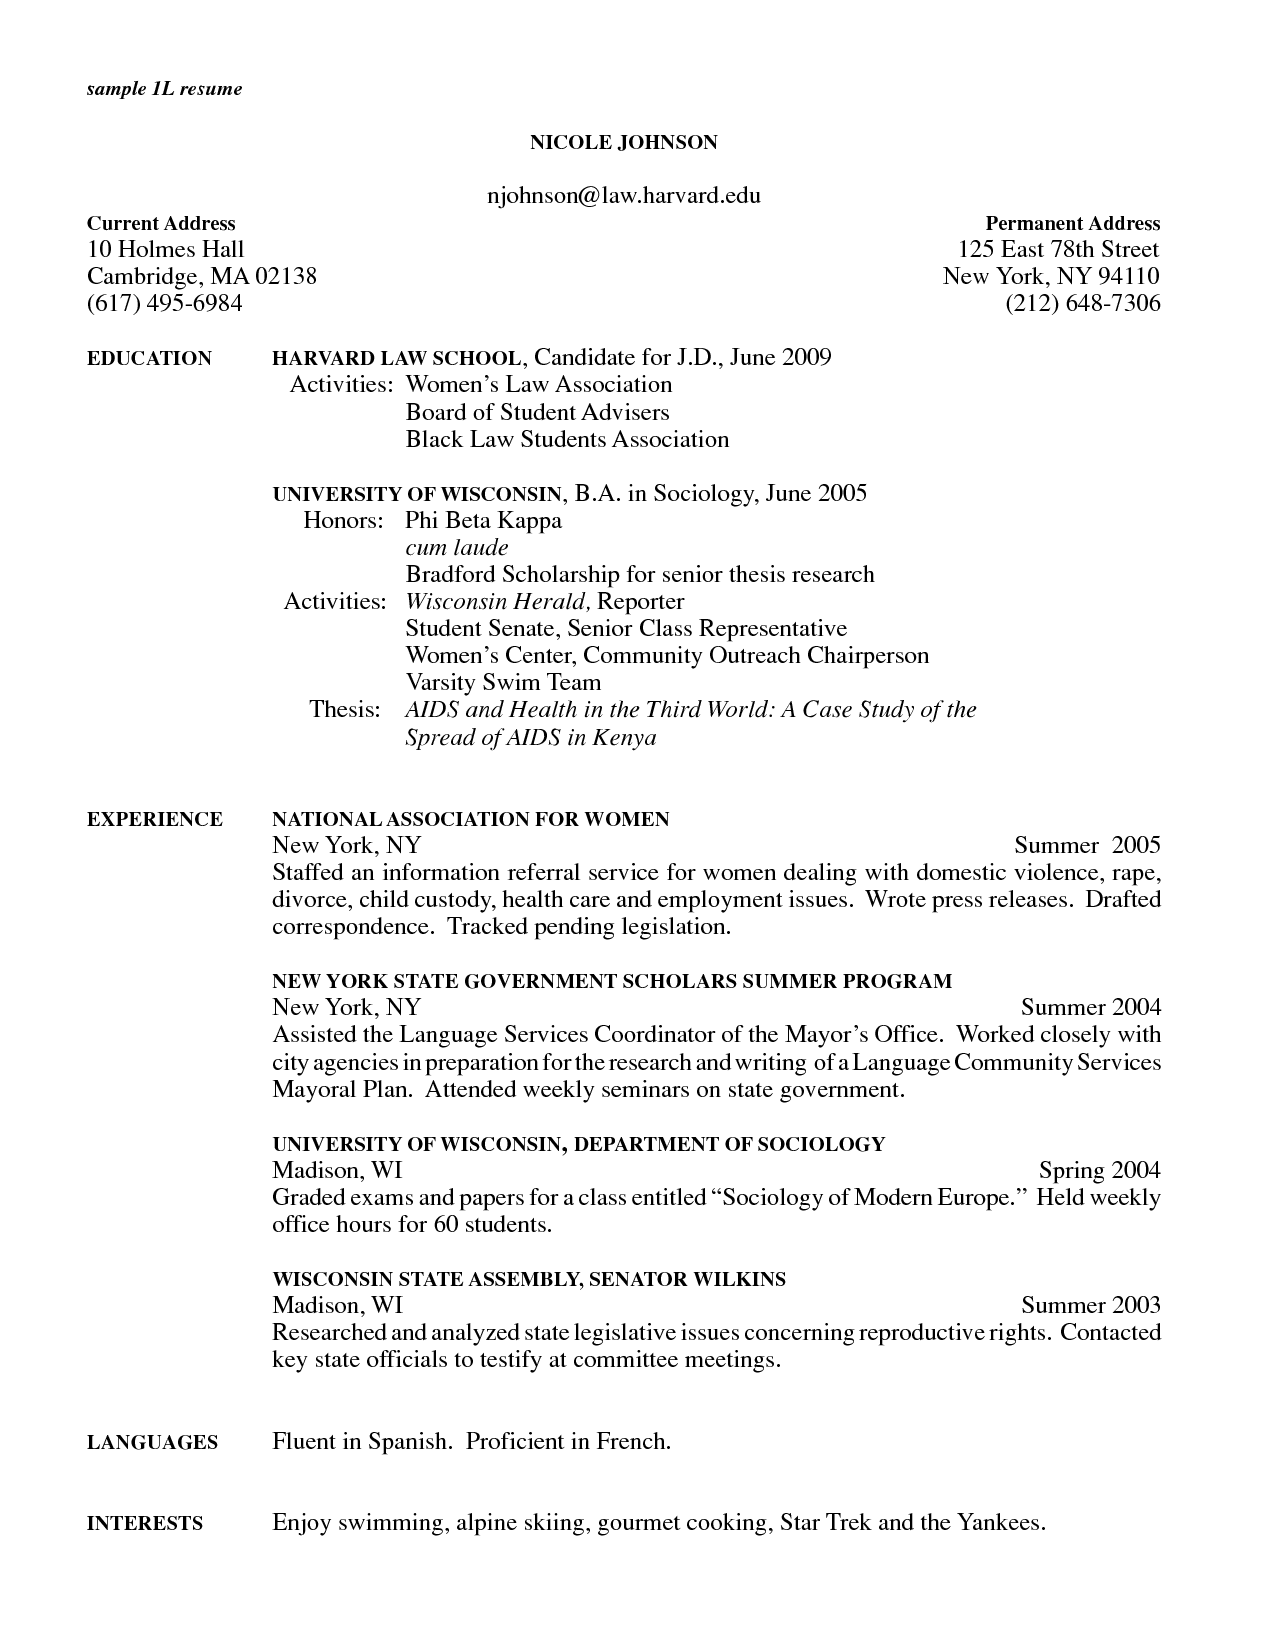 Resume For Law Graduate  Opinion Of Experts  Baseball